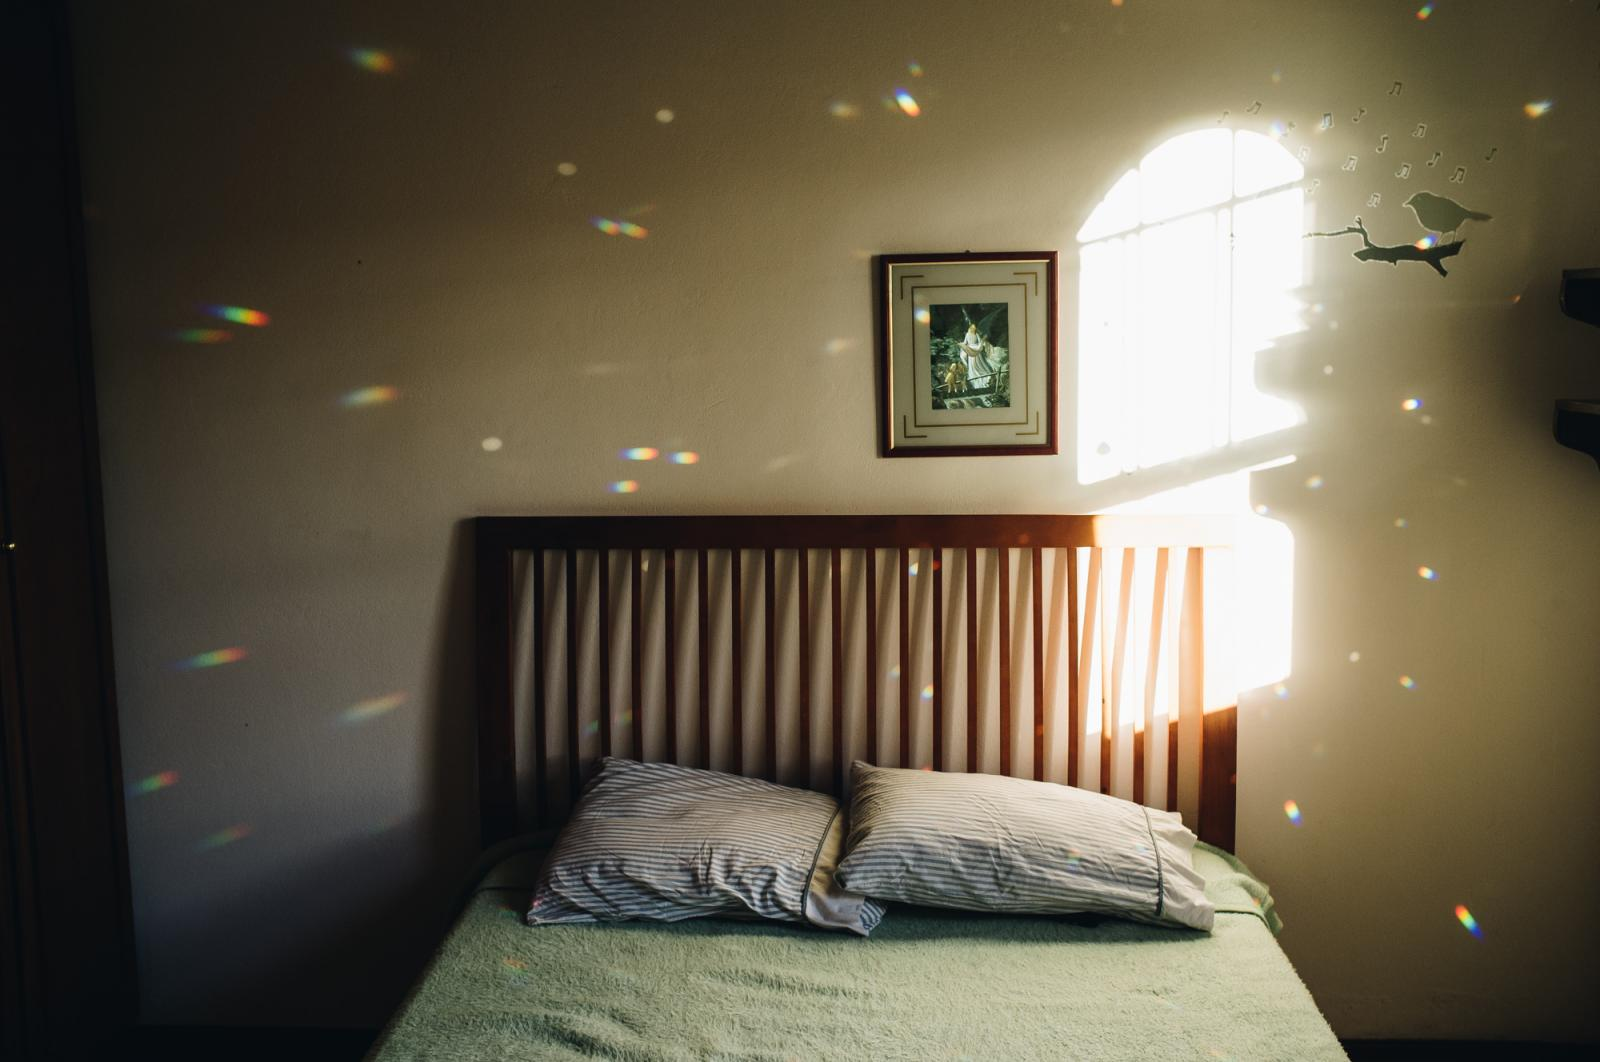 Bedroom in the afternoon. when the crystal shines through the window, chasing anything that brings up the spirit while waiting for Marco's biopsy result, all the family became more introspective and quieter. January 2018. Photo: Alinne Rezende